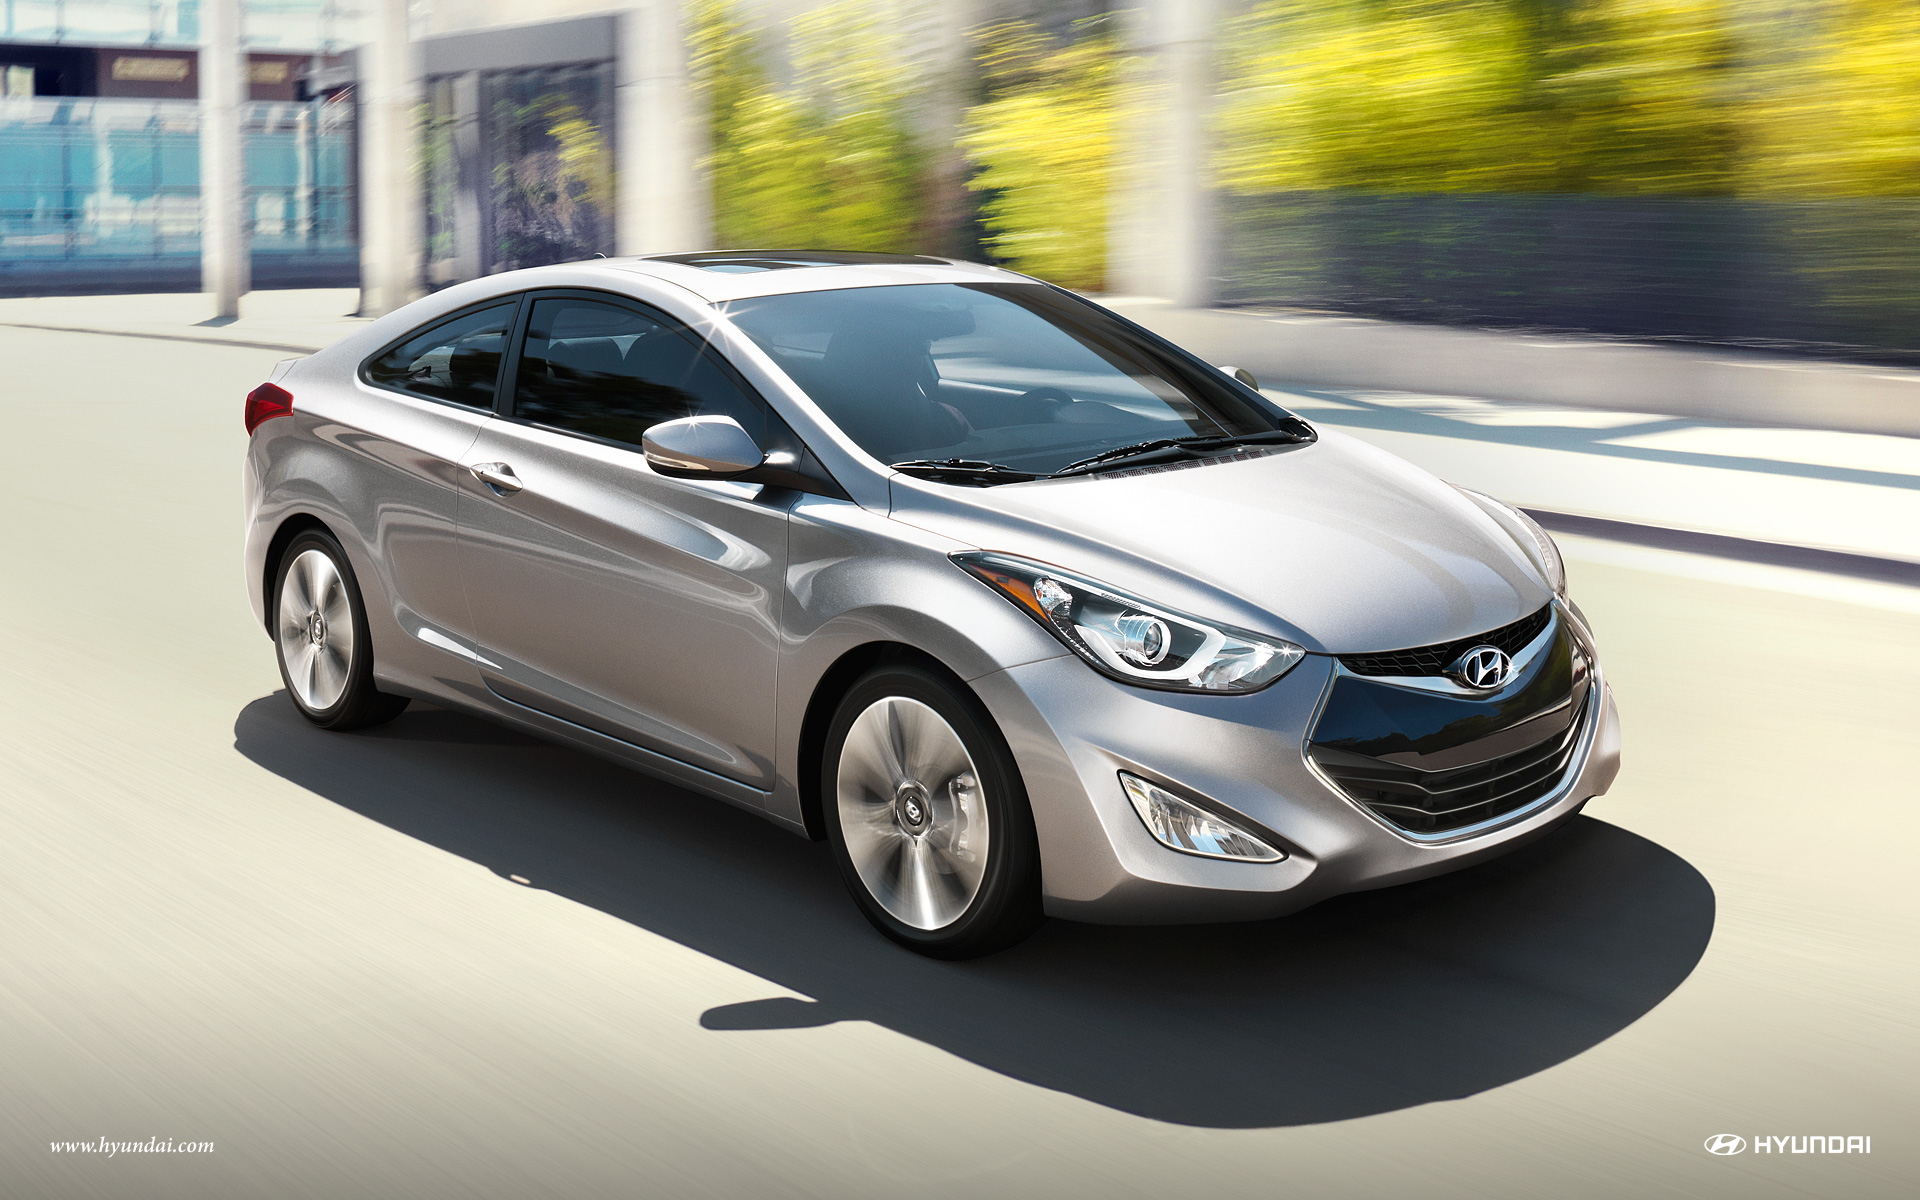 sport informations hyundai coupe articles bestcarmag com makes bestride photos elantra